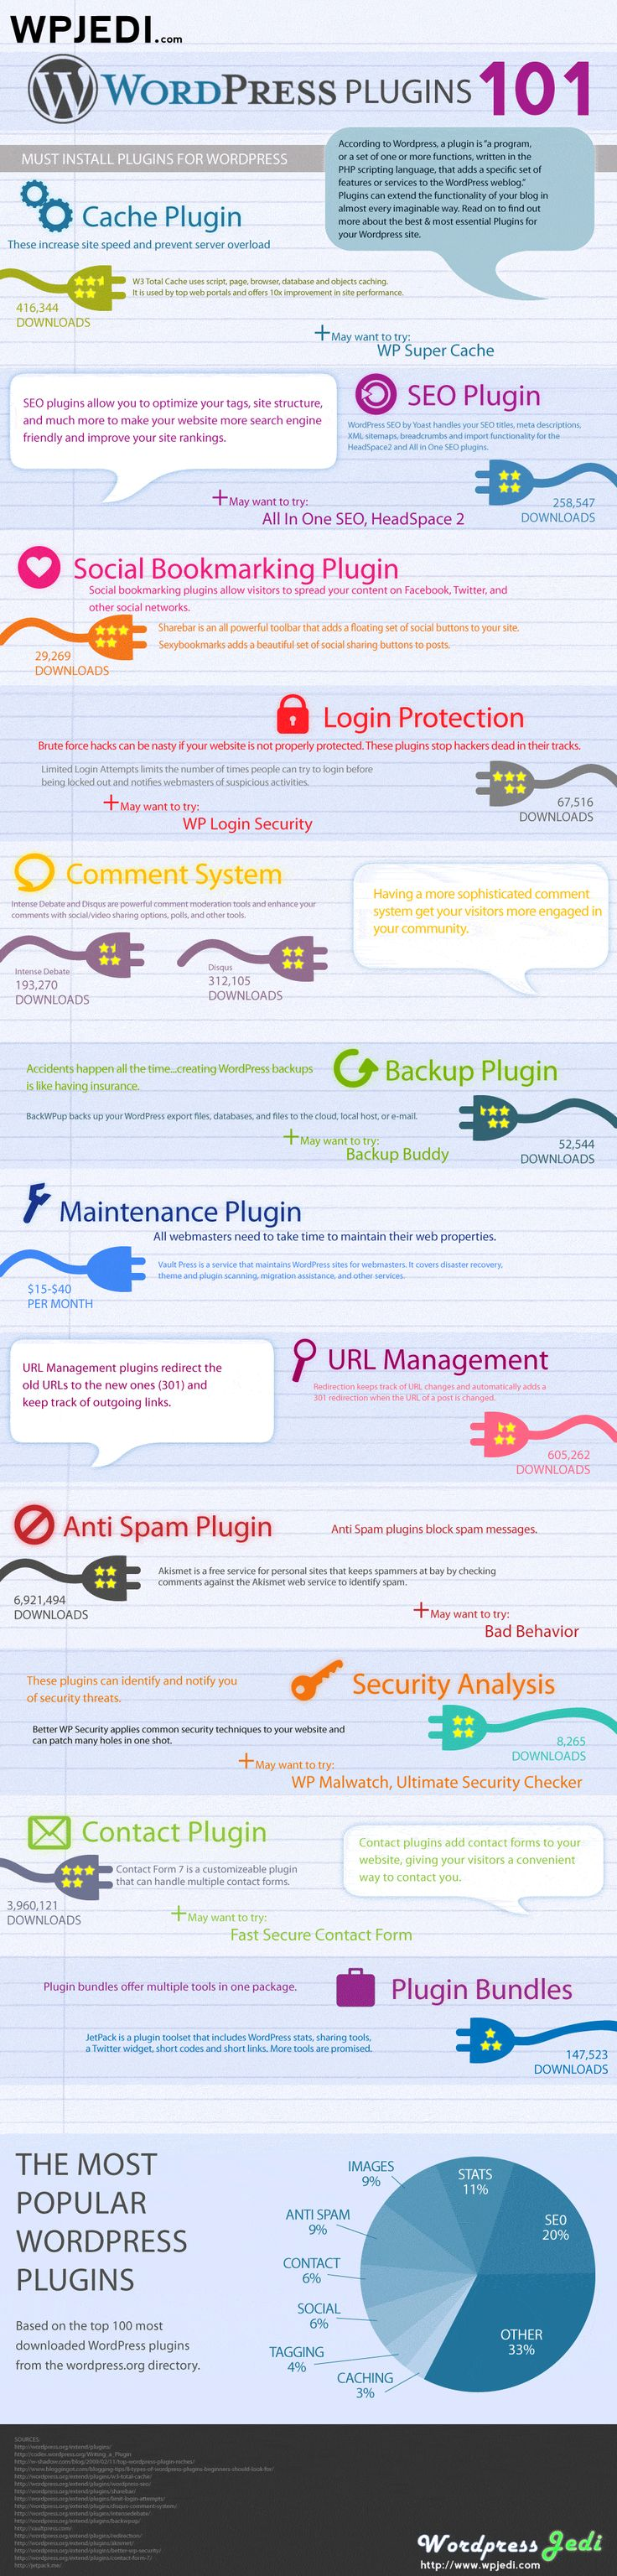 Infographic: WordPress plugins 101